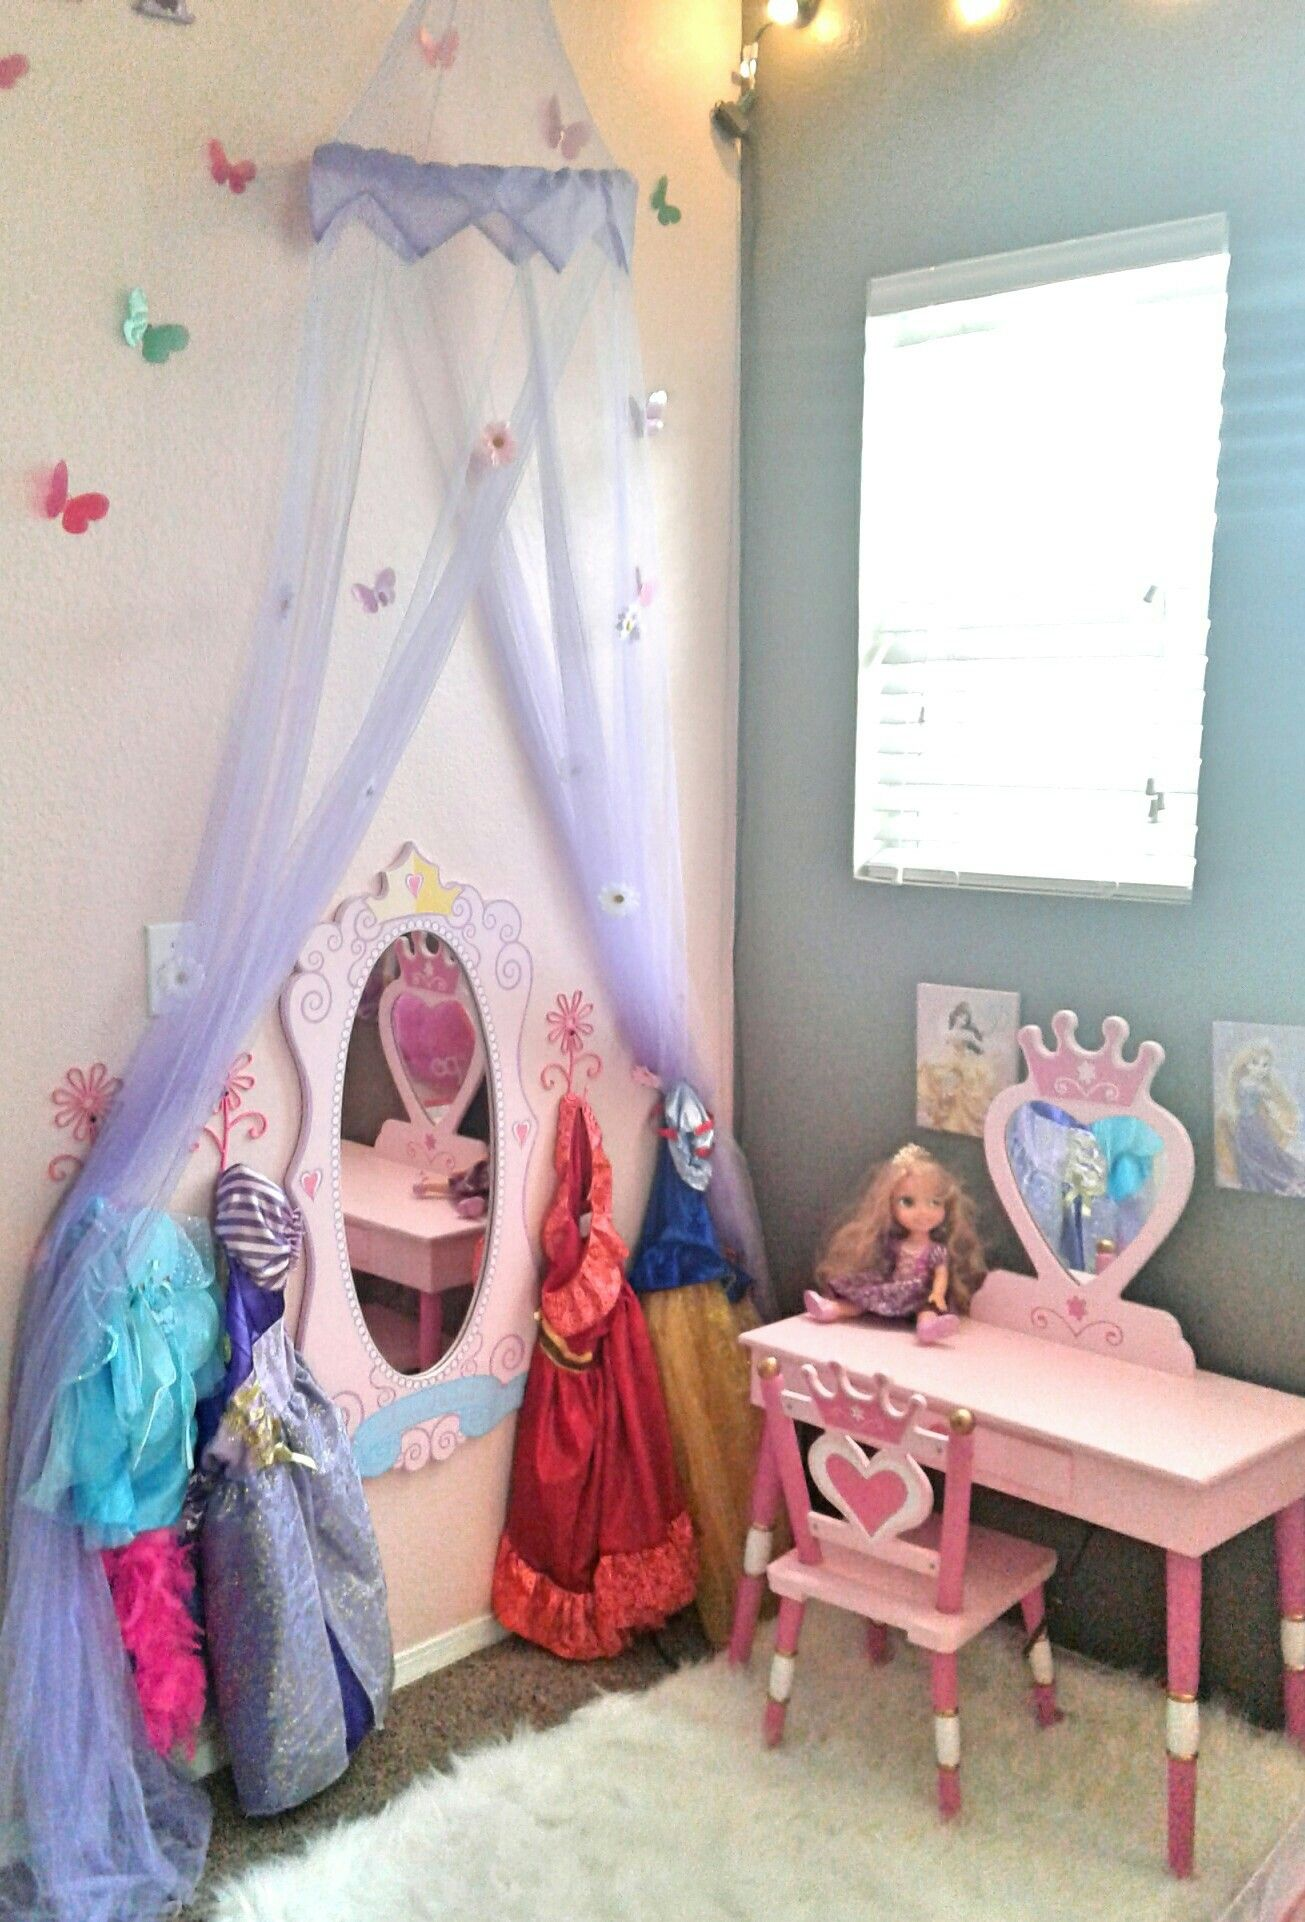 Pin de adriann barlow en playroom pinterest dormitorio for Cuartos para ninas pintura